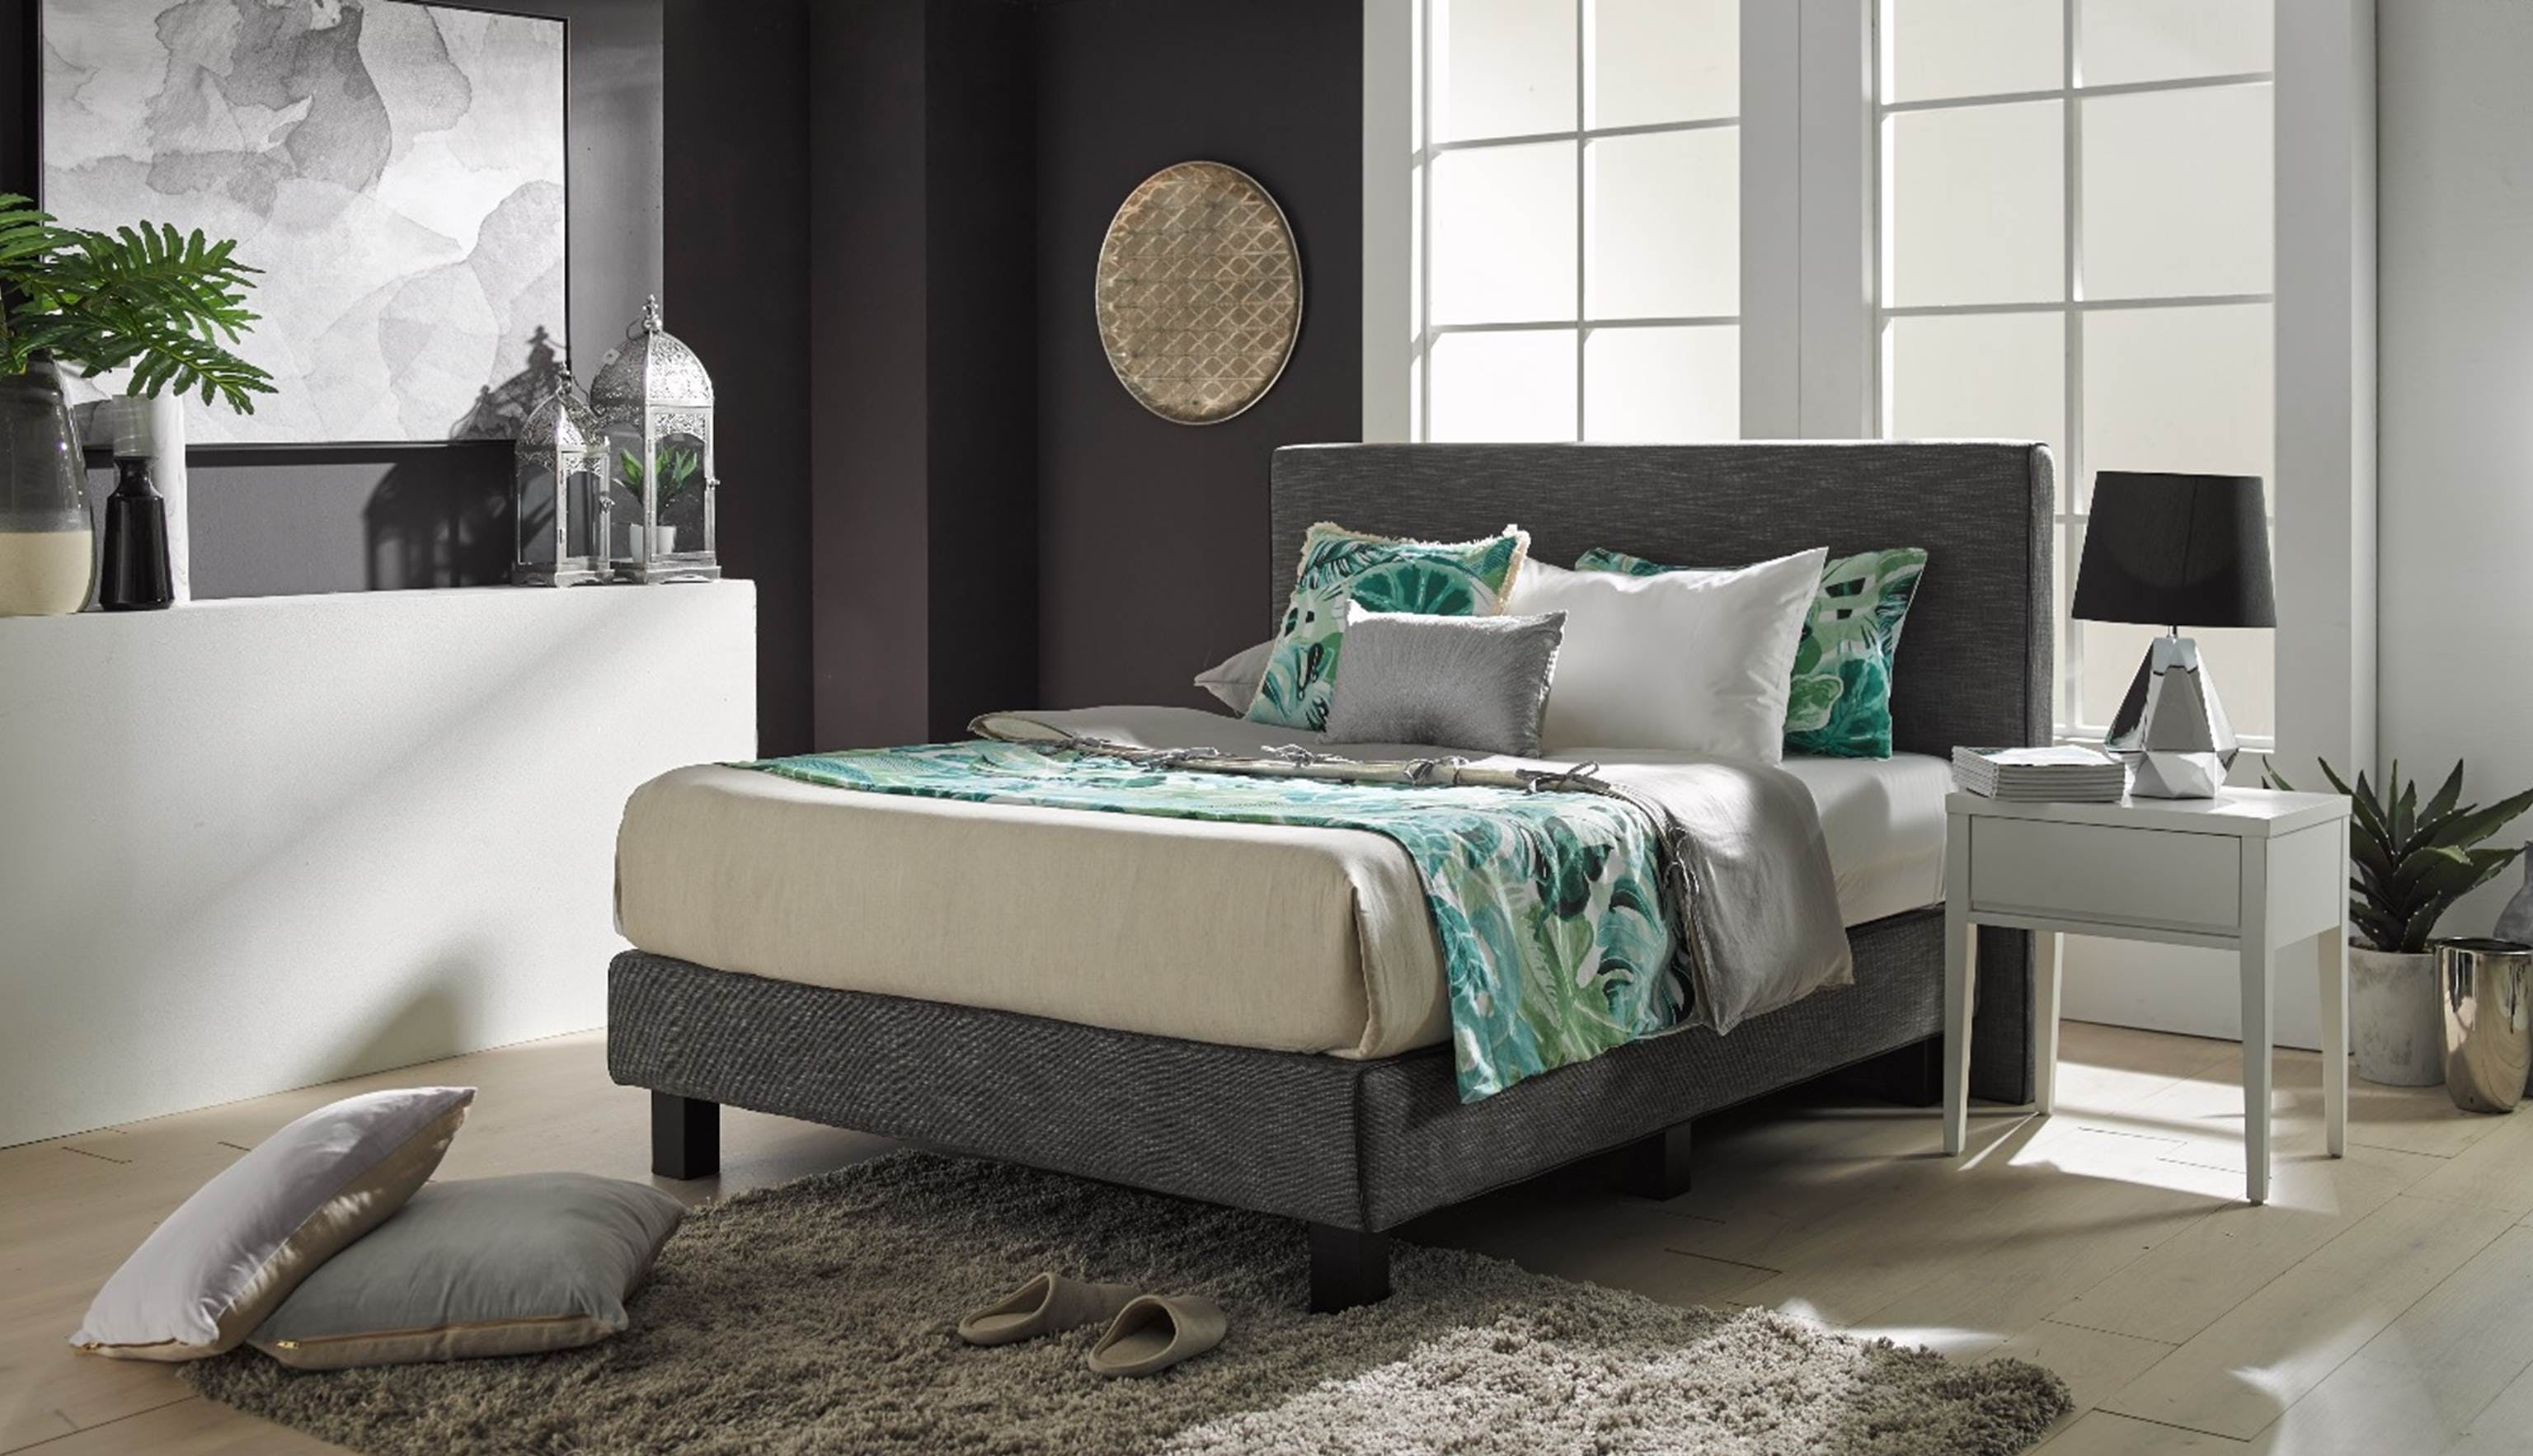 Bargo Queen Size Bed Frame in Fabric Upholstery | Harvey ...